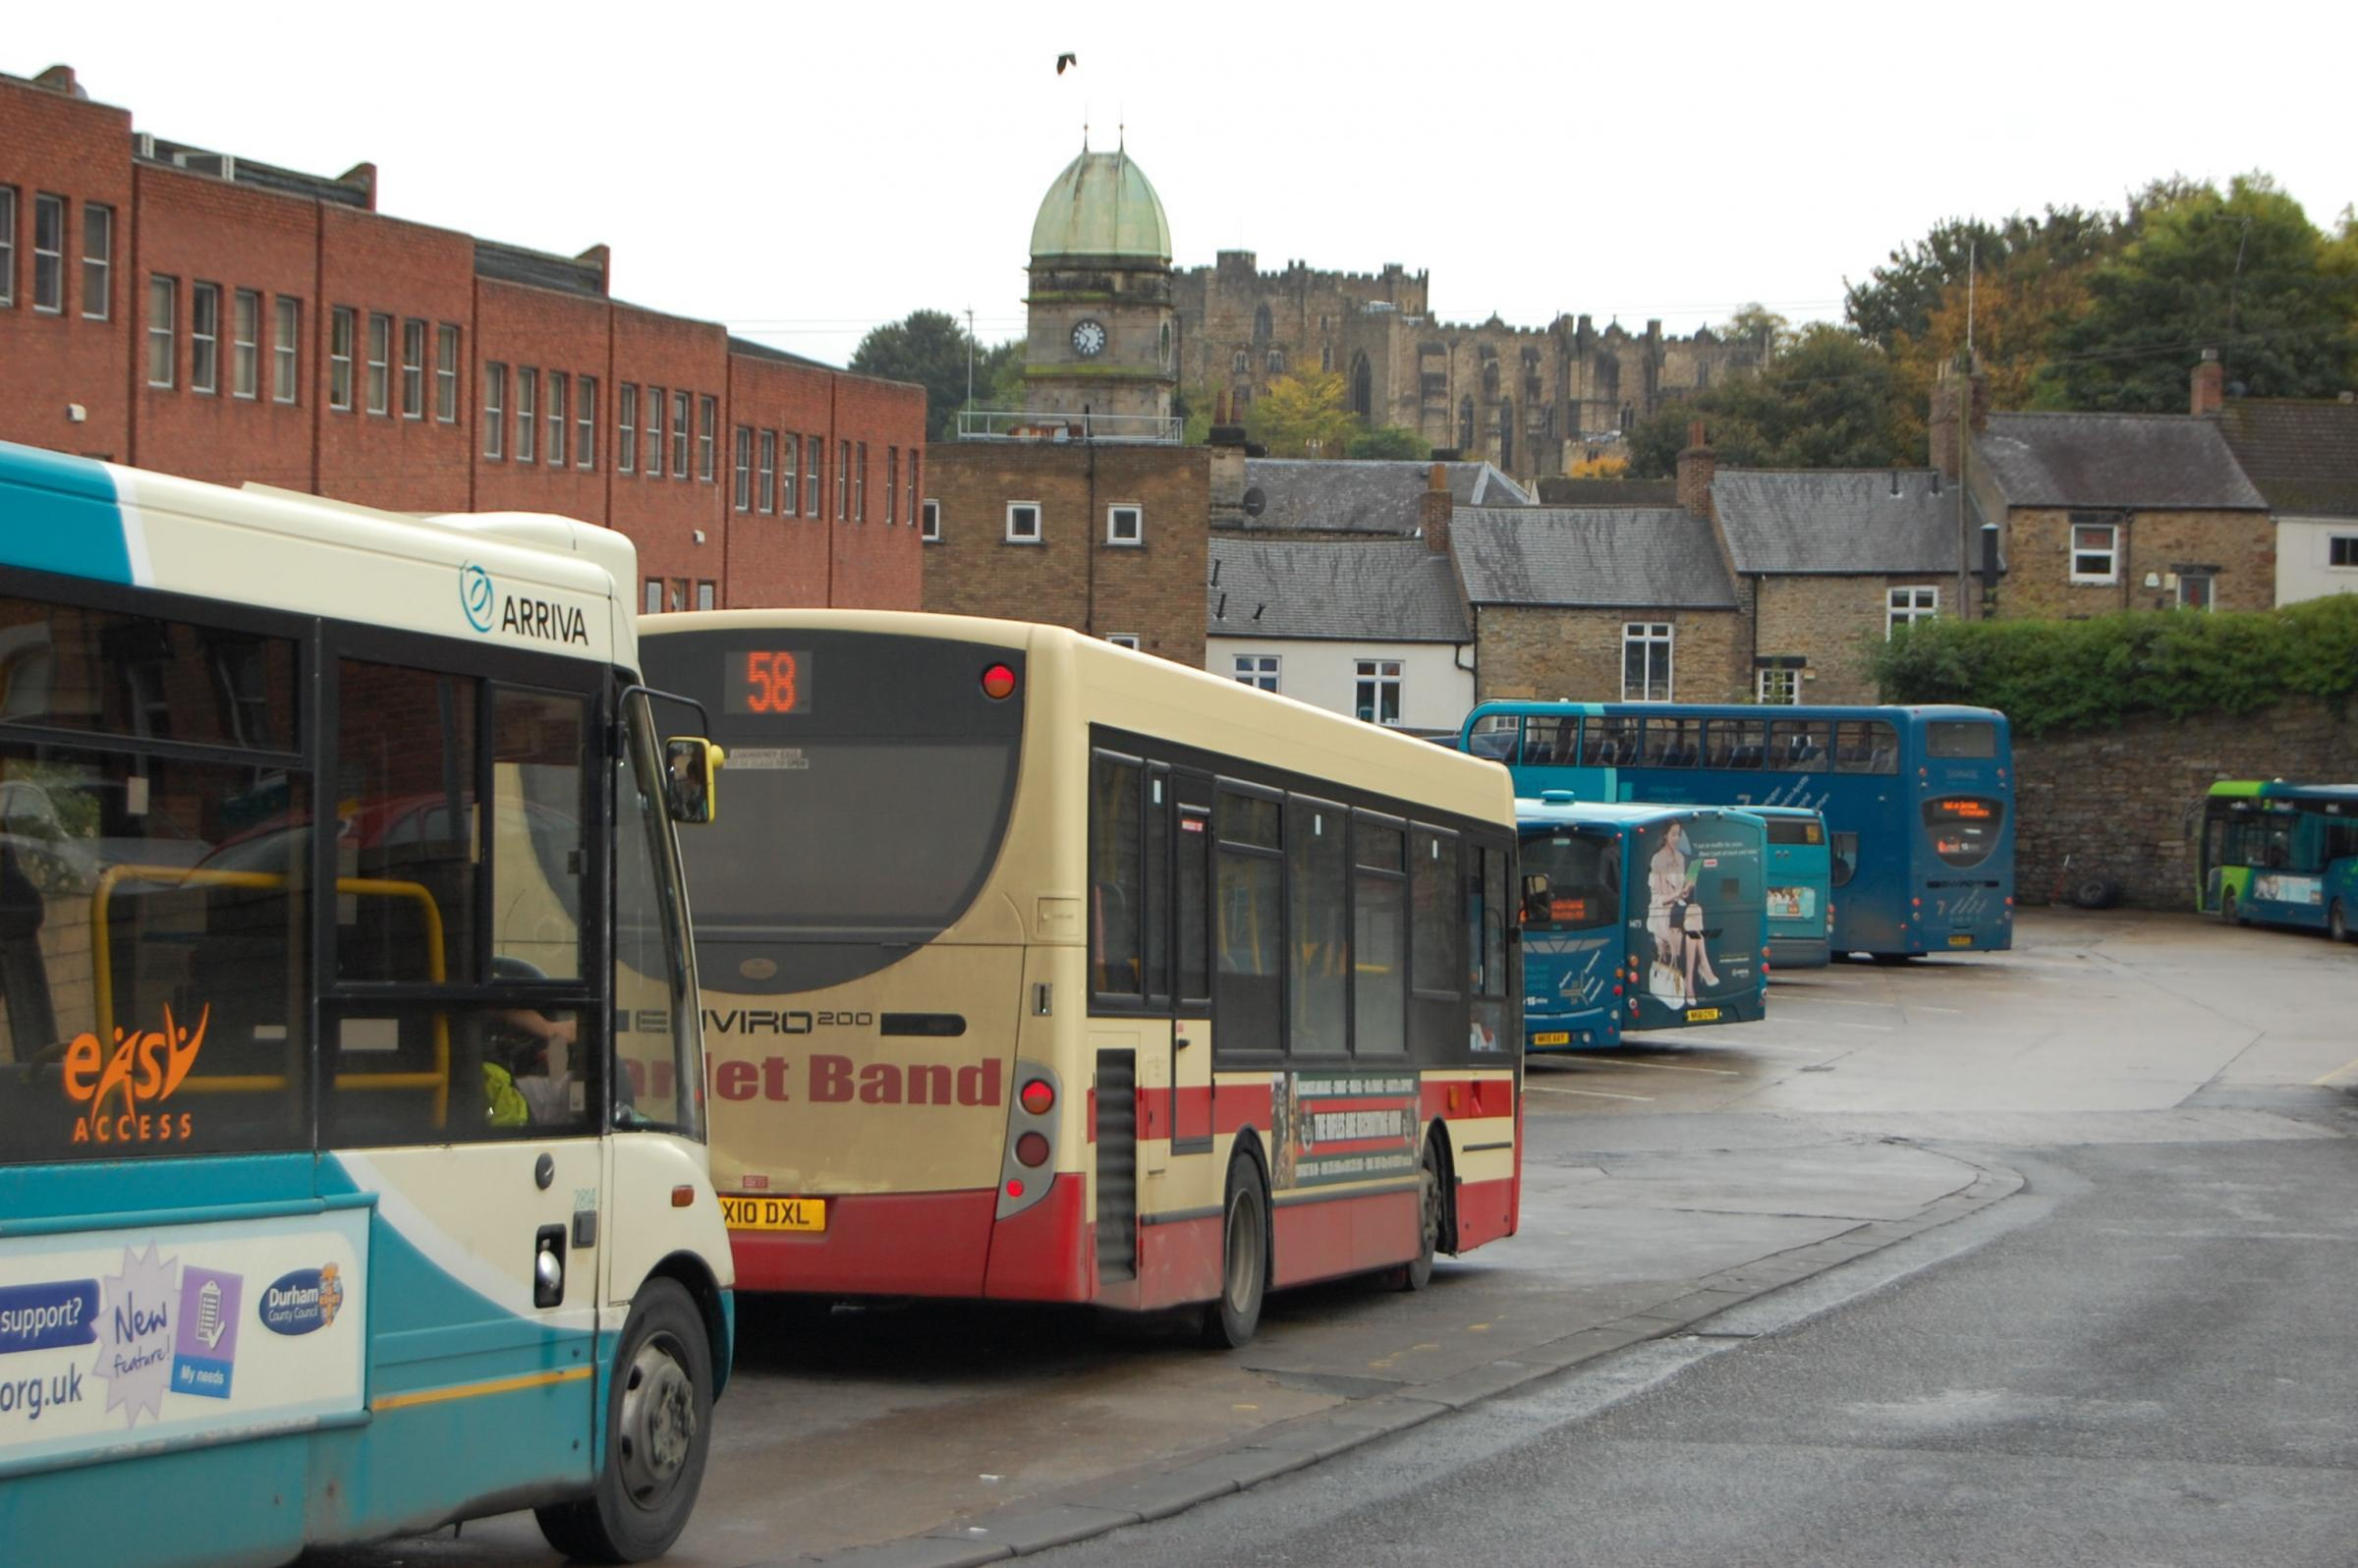 Plans are being made to carry out an £8m refurbishment of North Road bus station